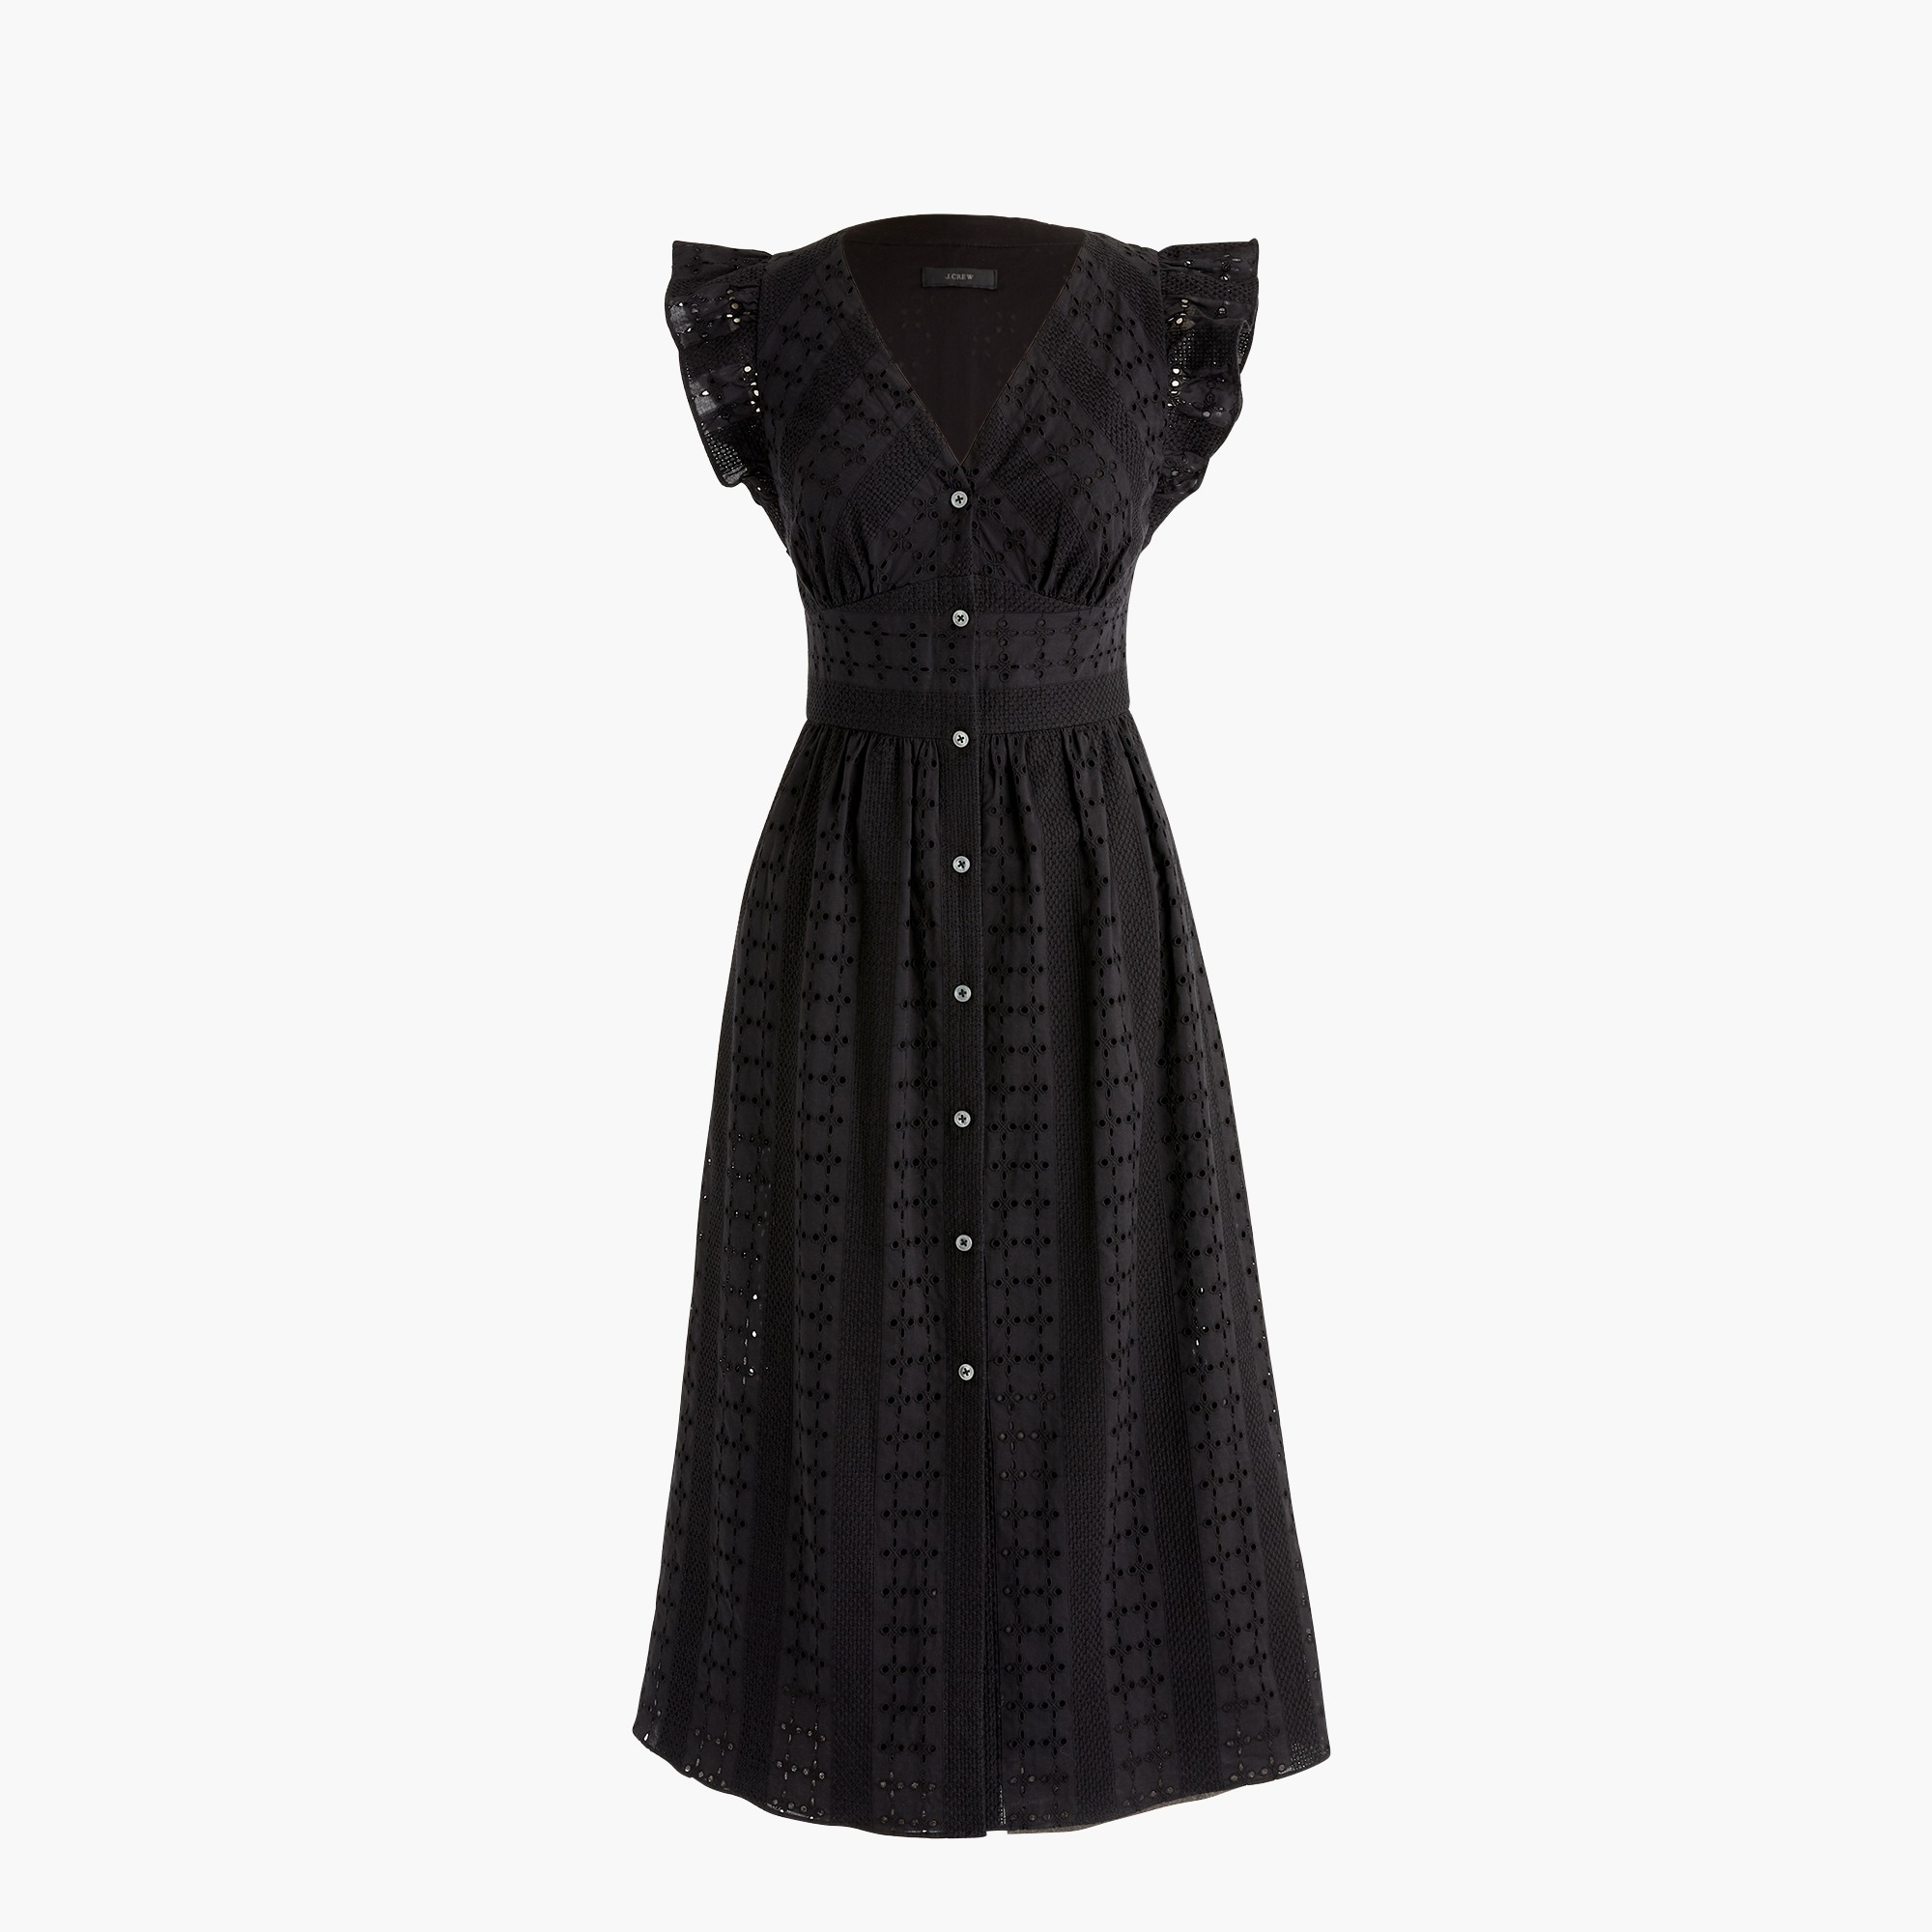 Image 4 for Ruffle-sleeve eyelet dress